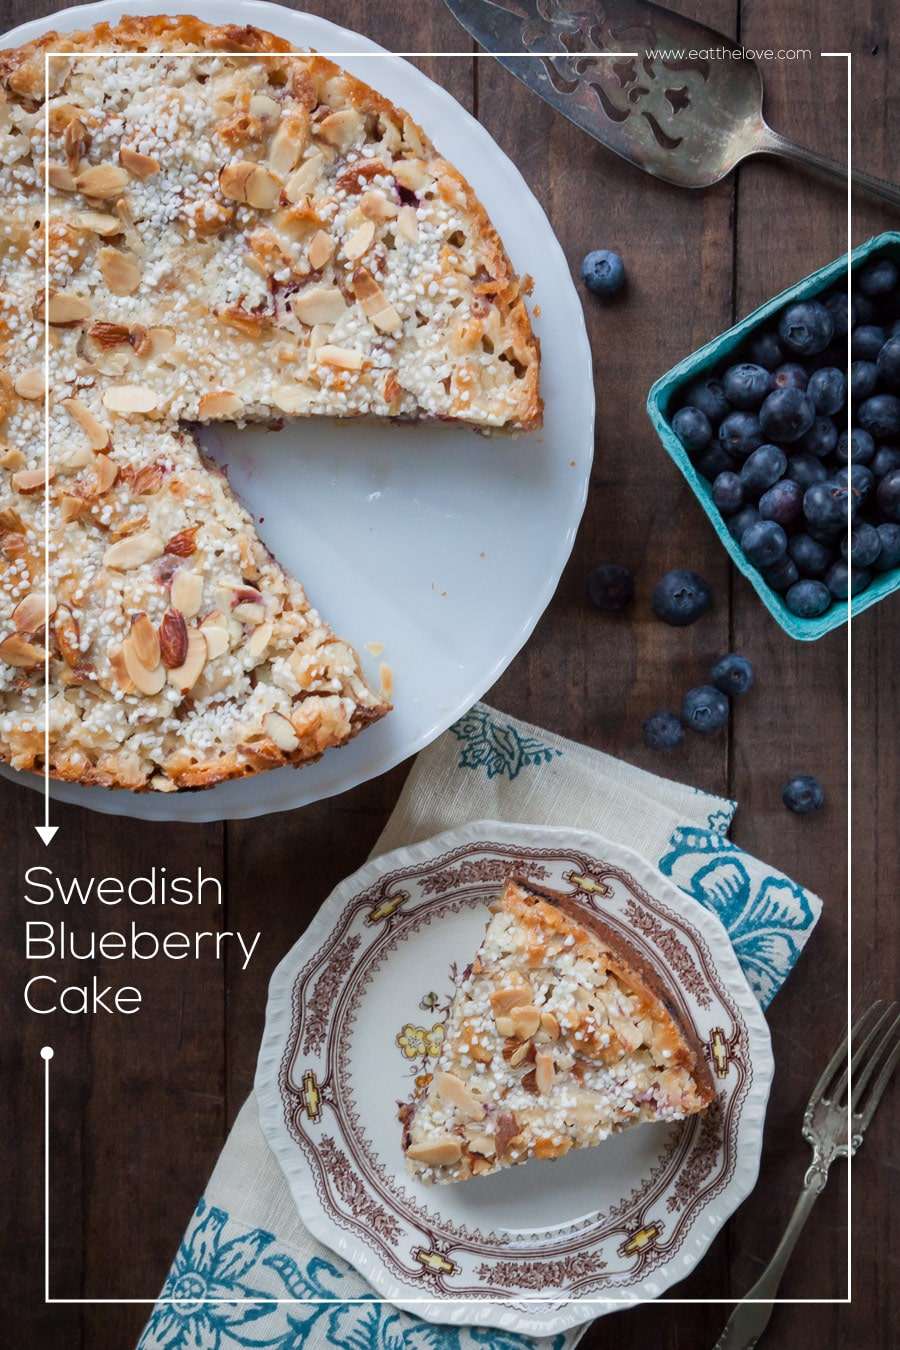 Swedish Blueberry Cake (Blueberry Tosca Cake)